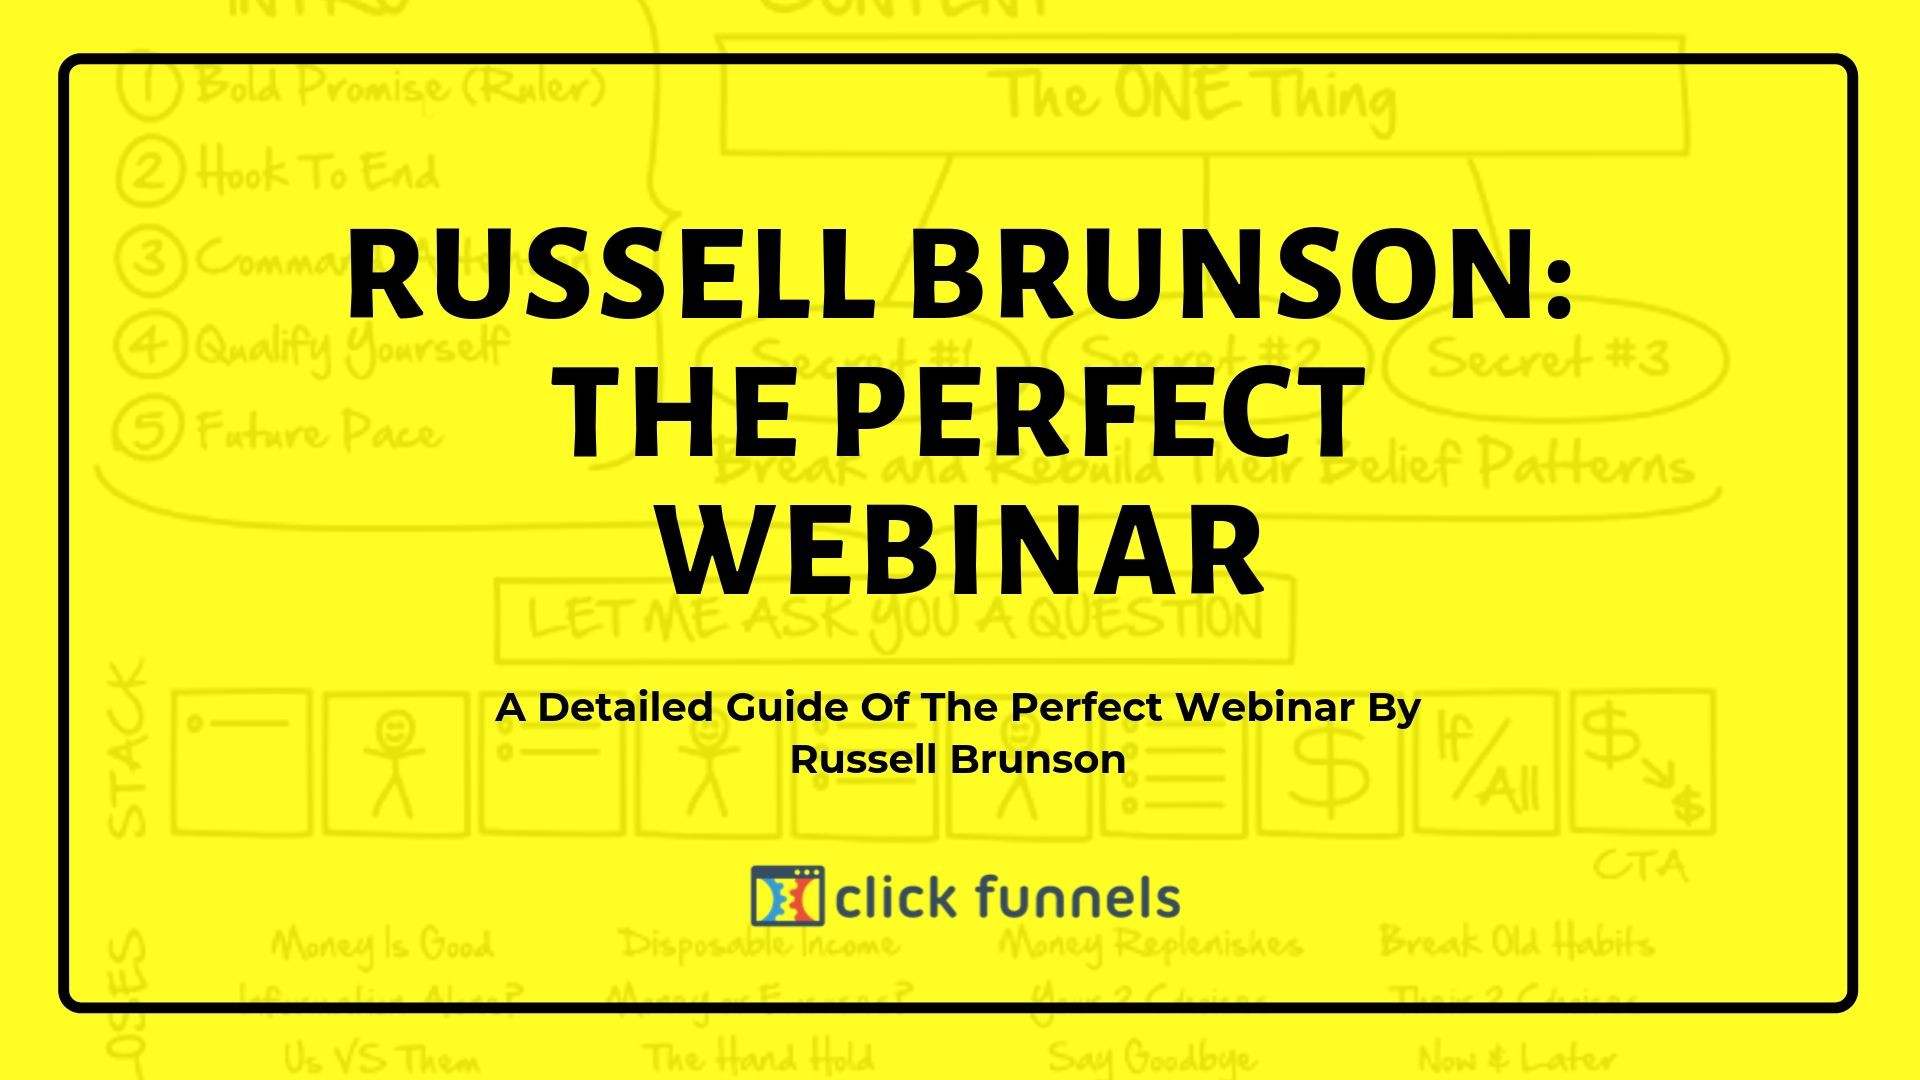 The perfect webinar script and template by Russell Brunson